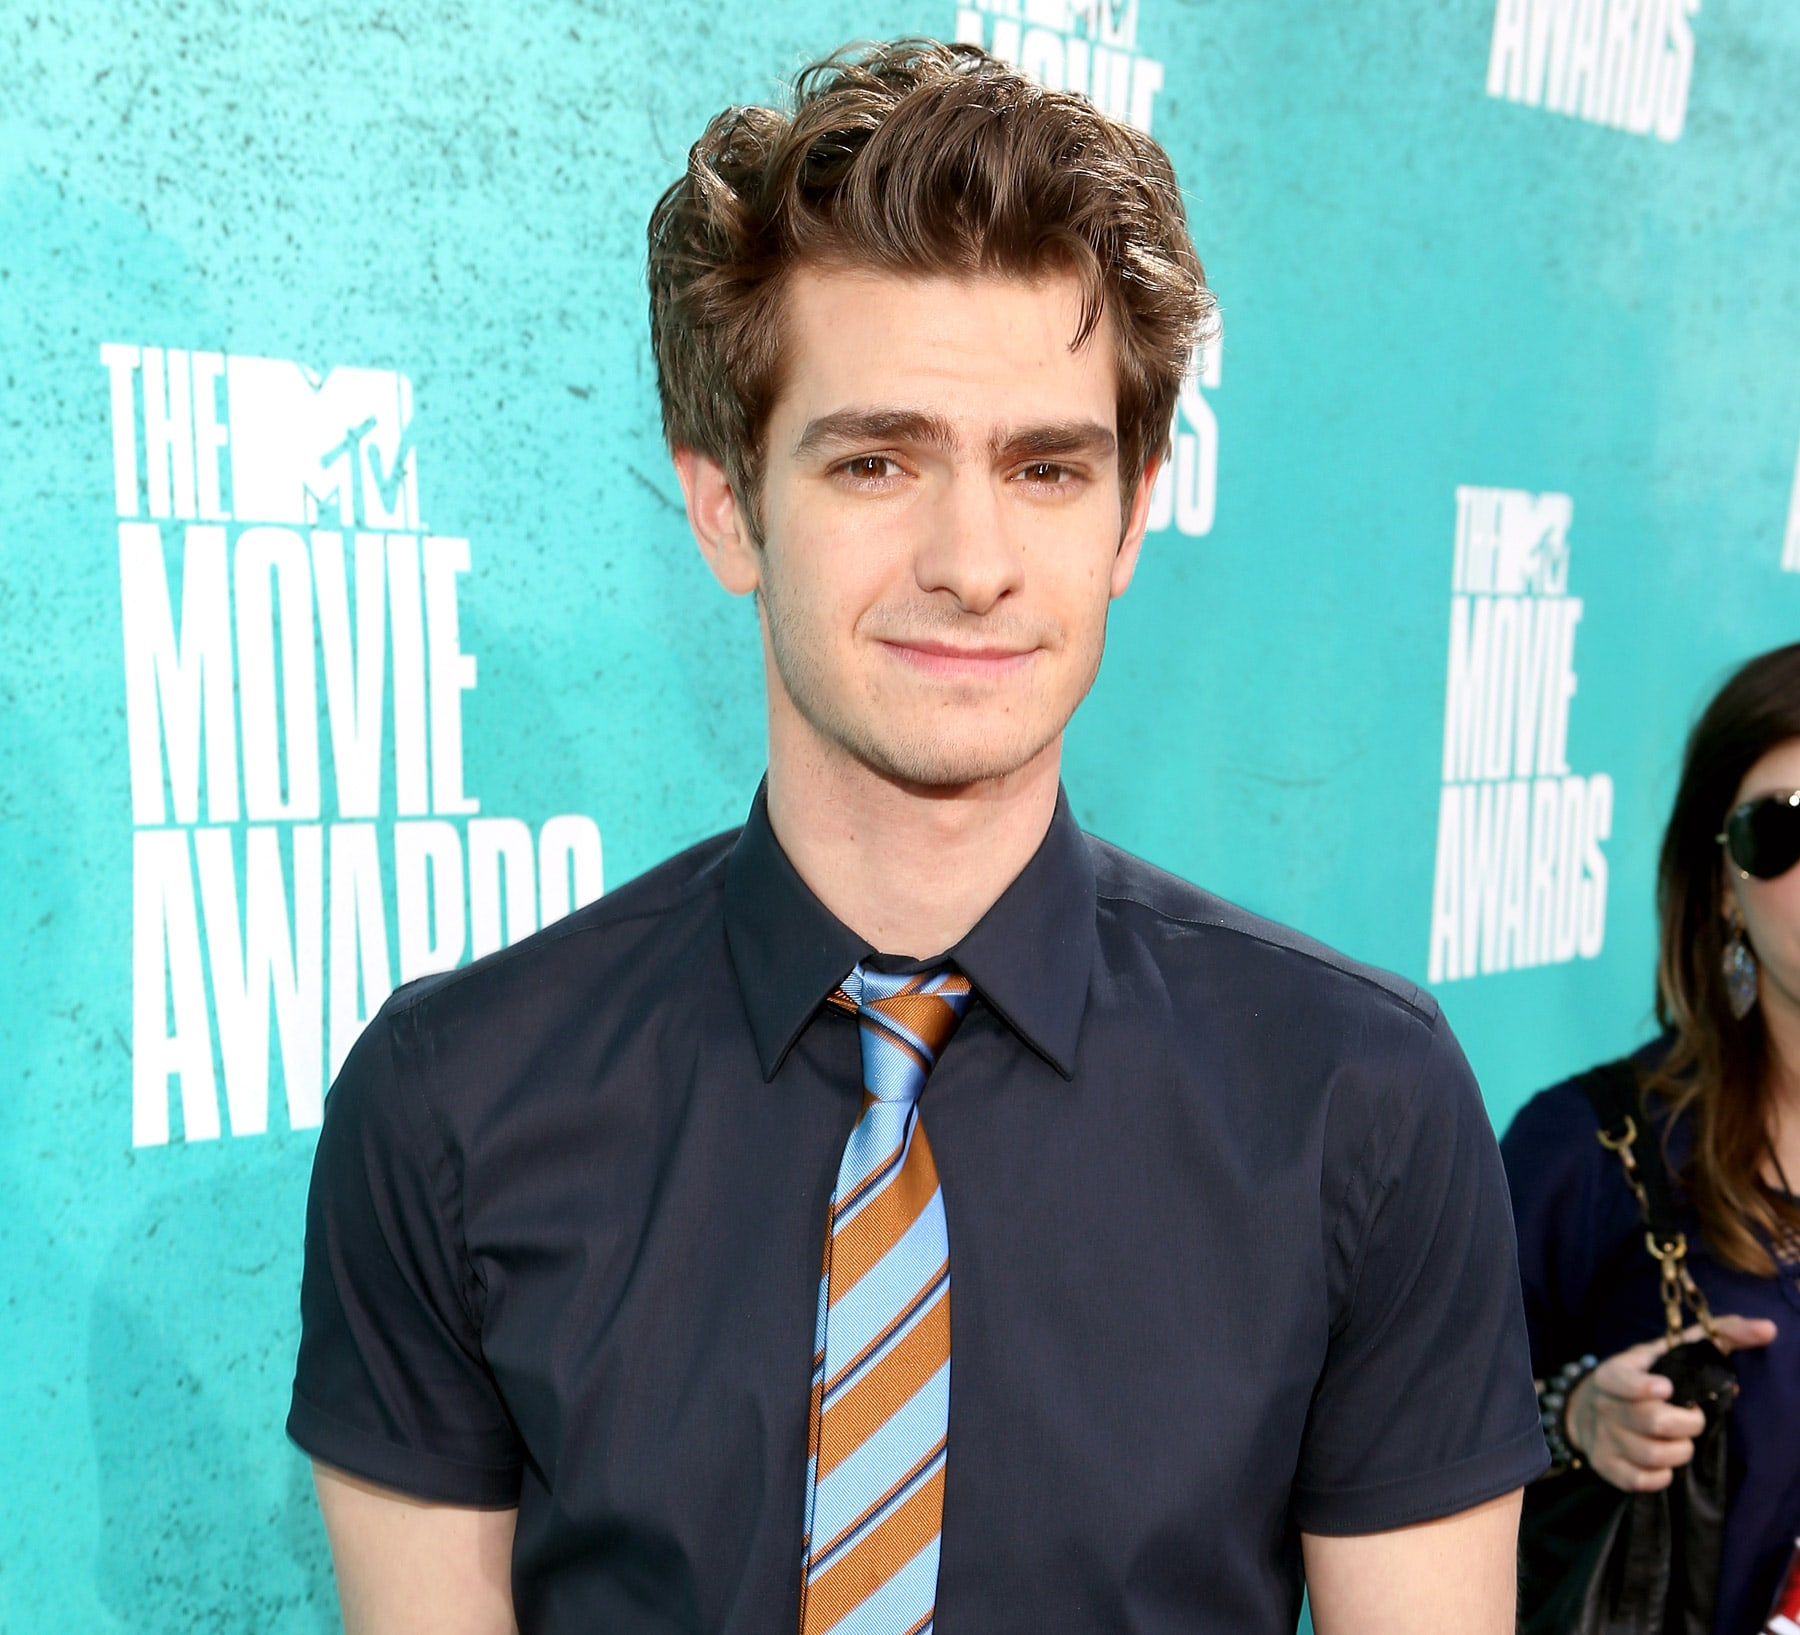 Andrew Garfield Hd Pics Wallpapers